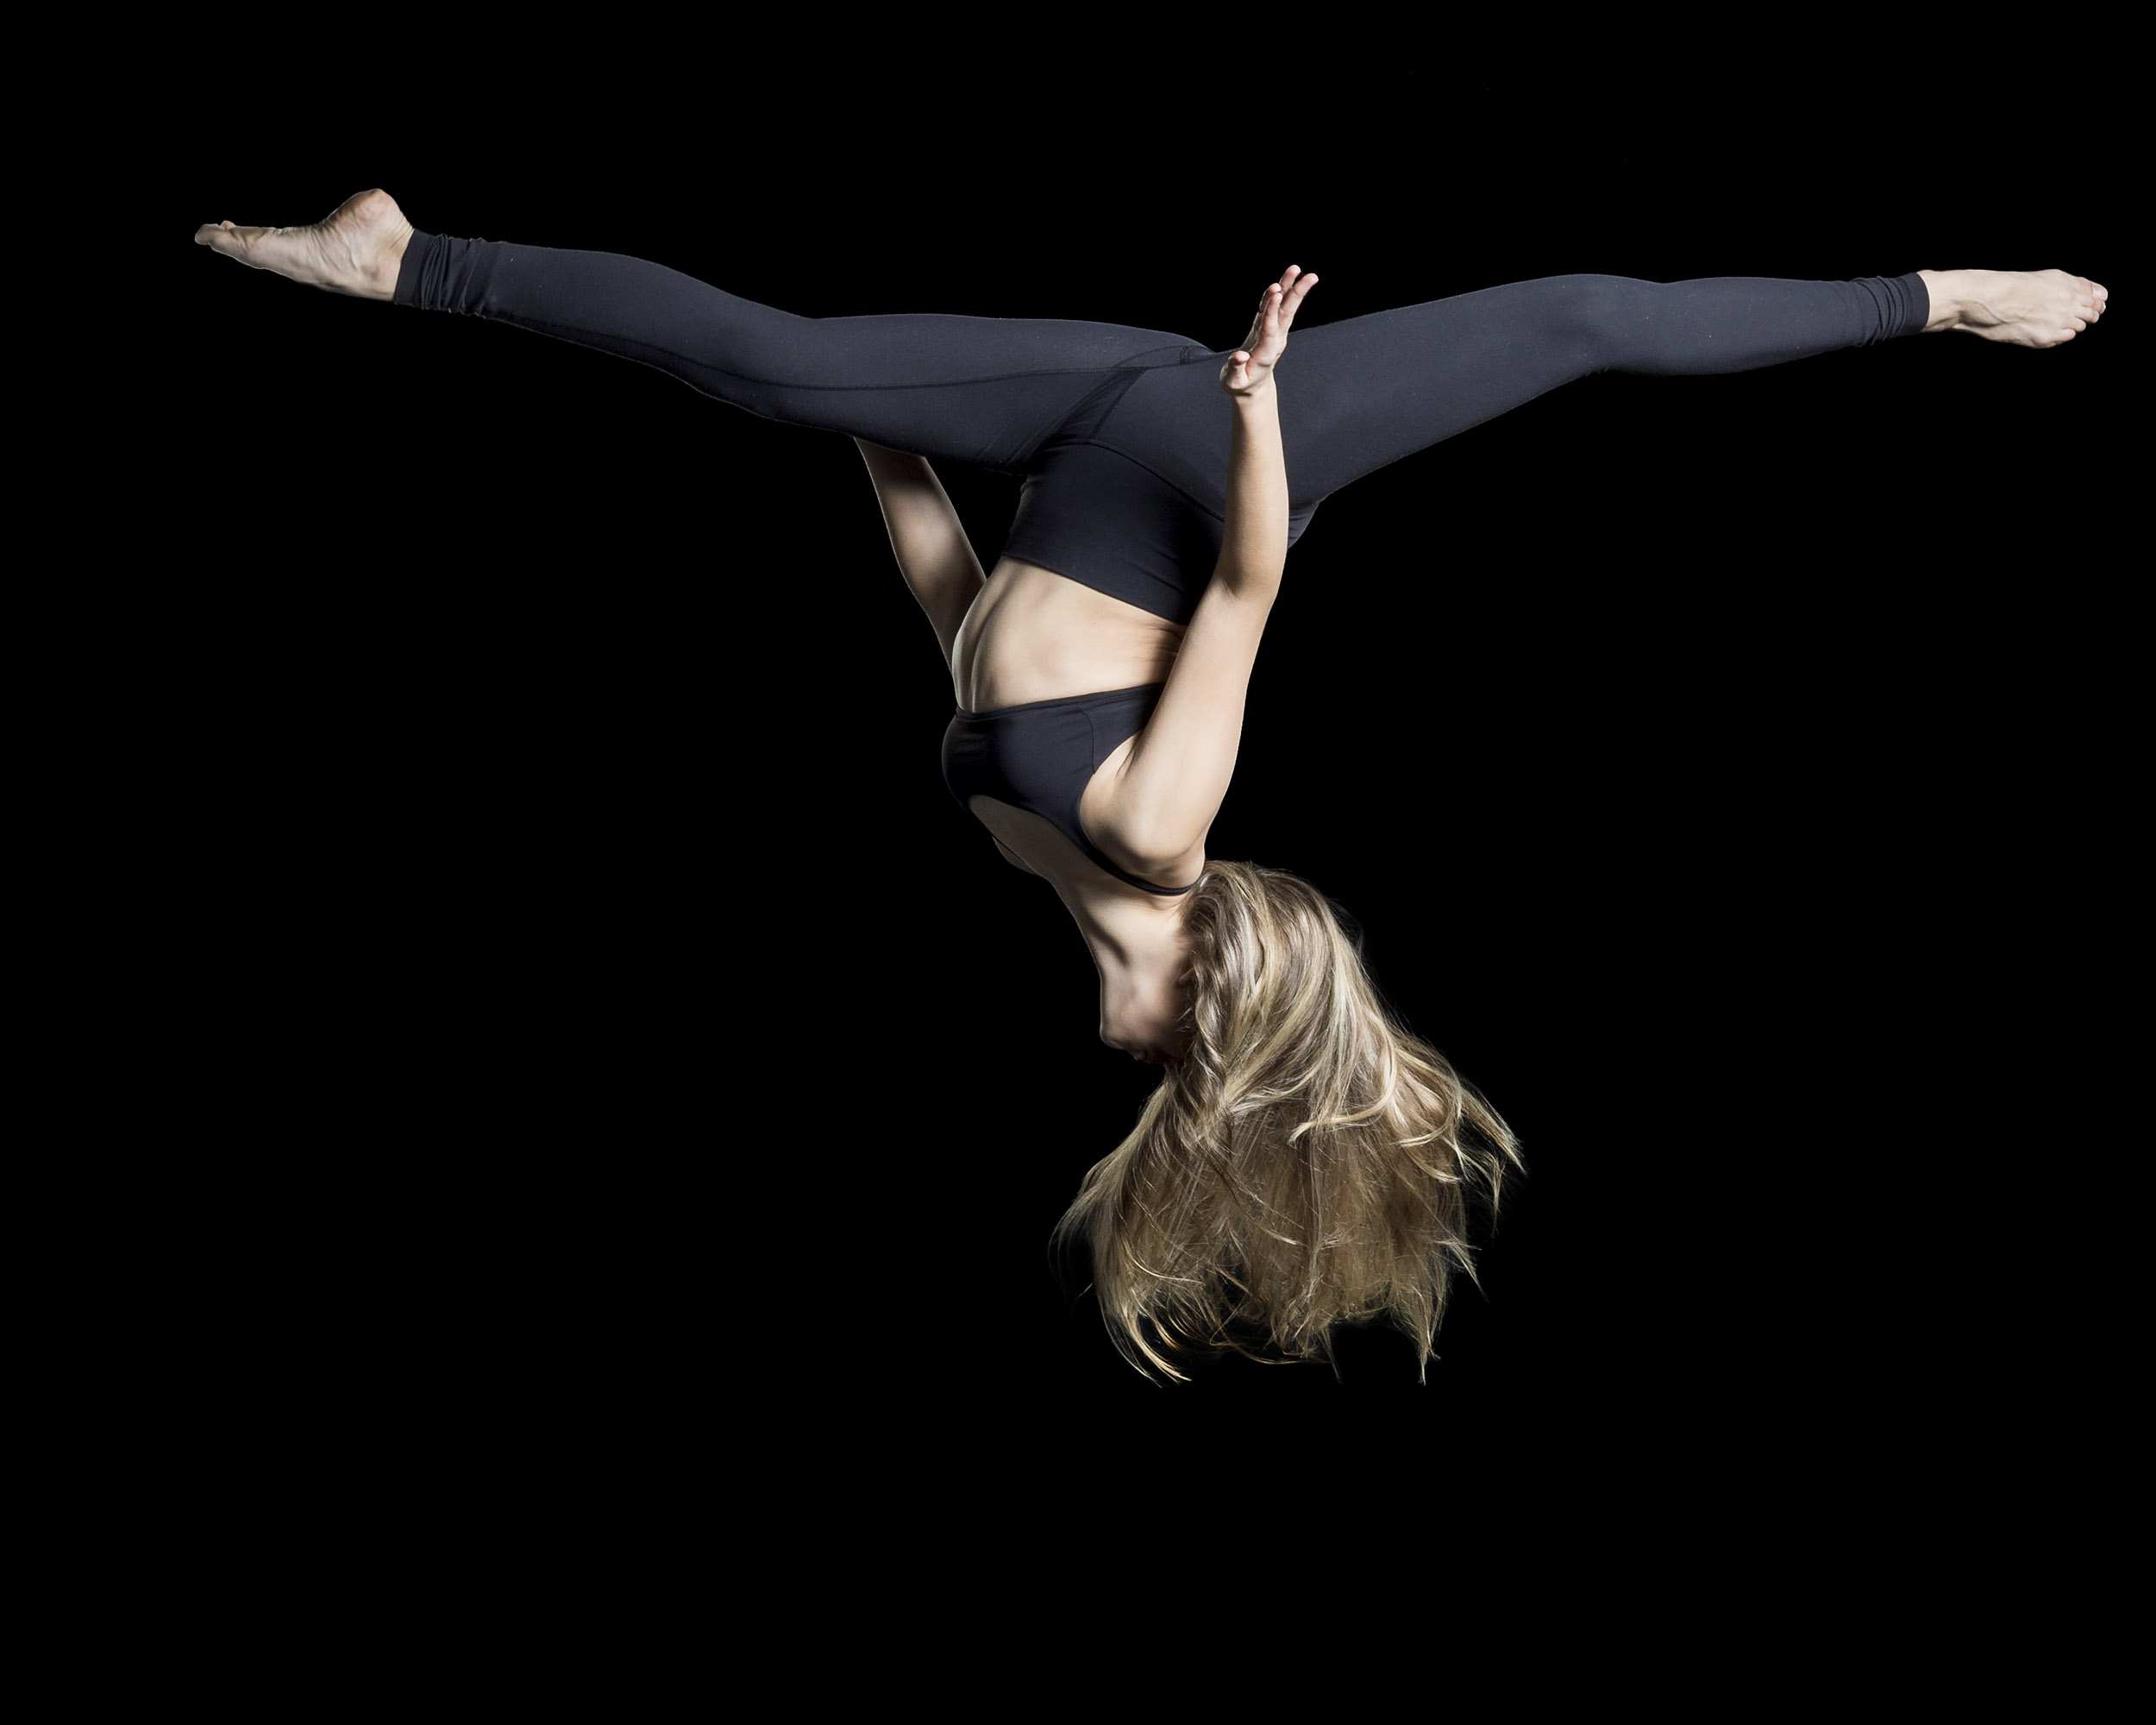 Perfect form on being upside down.